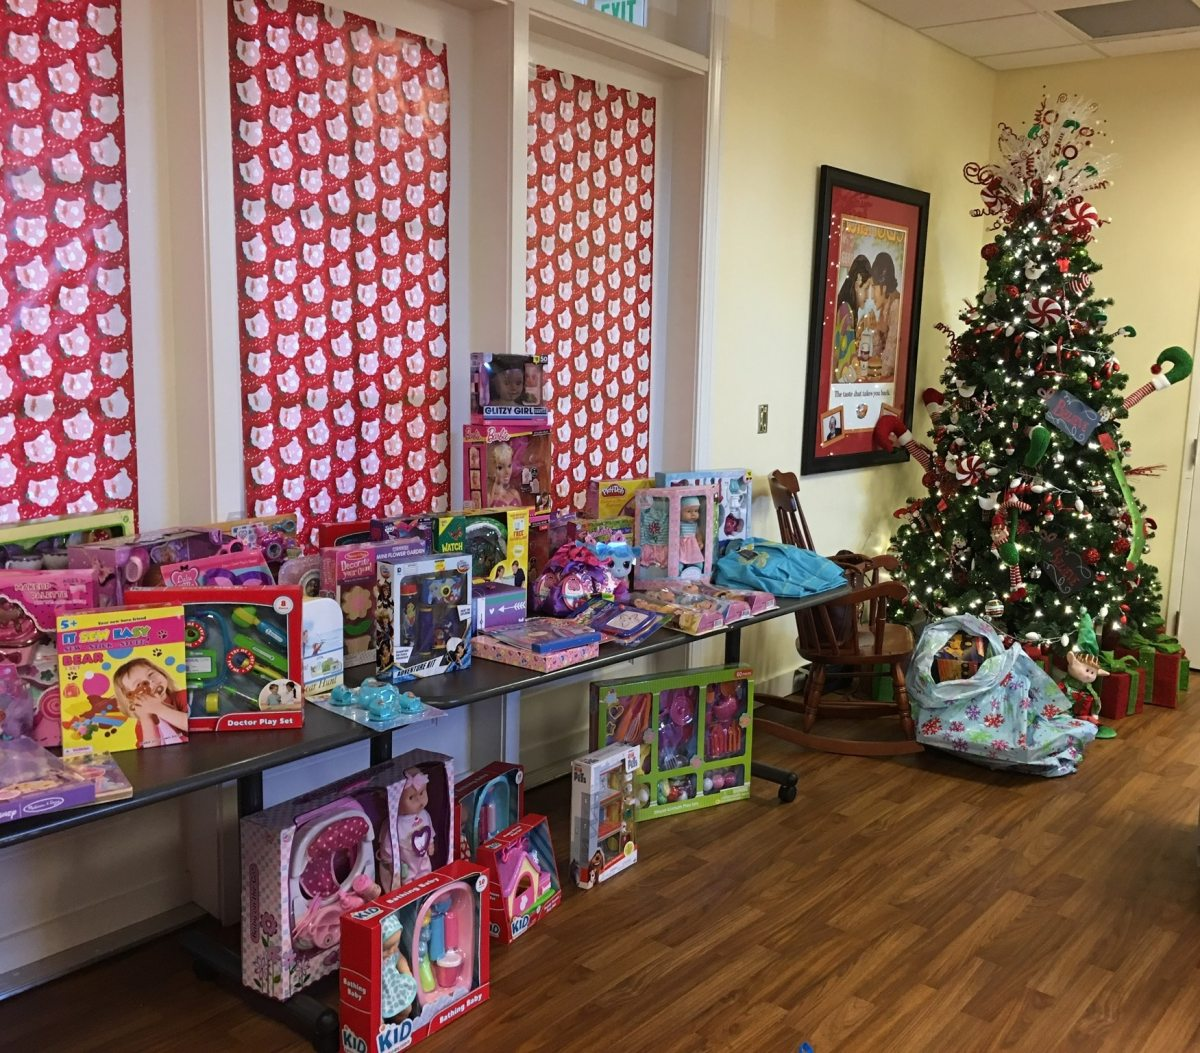 Donate to Ronald McDonald House and the Ronald Workshop this Christmason behalf of Riverchase Galleria shooting victim Molly Davis